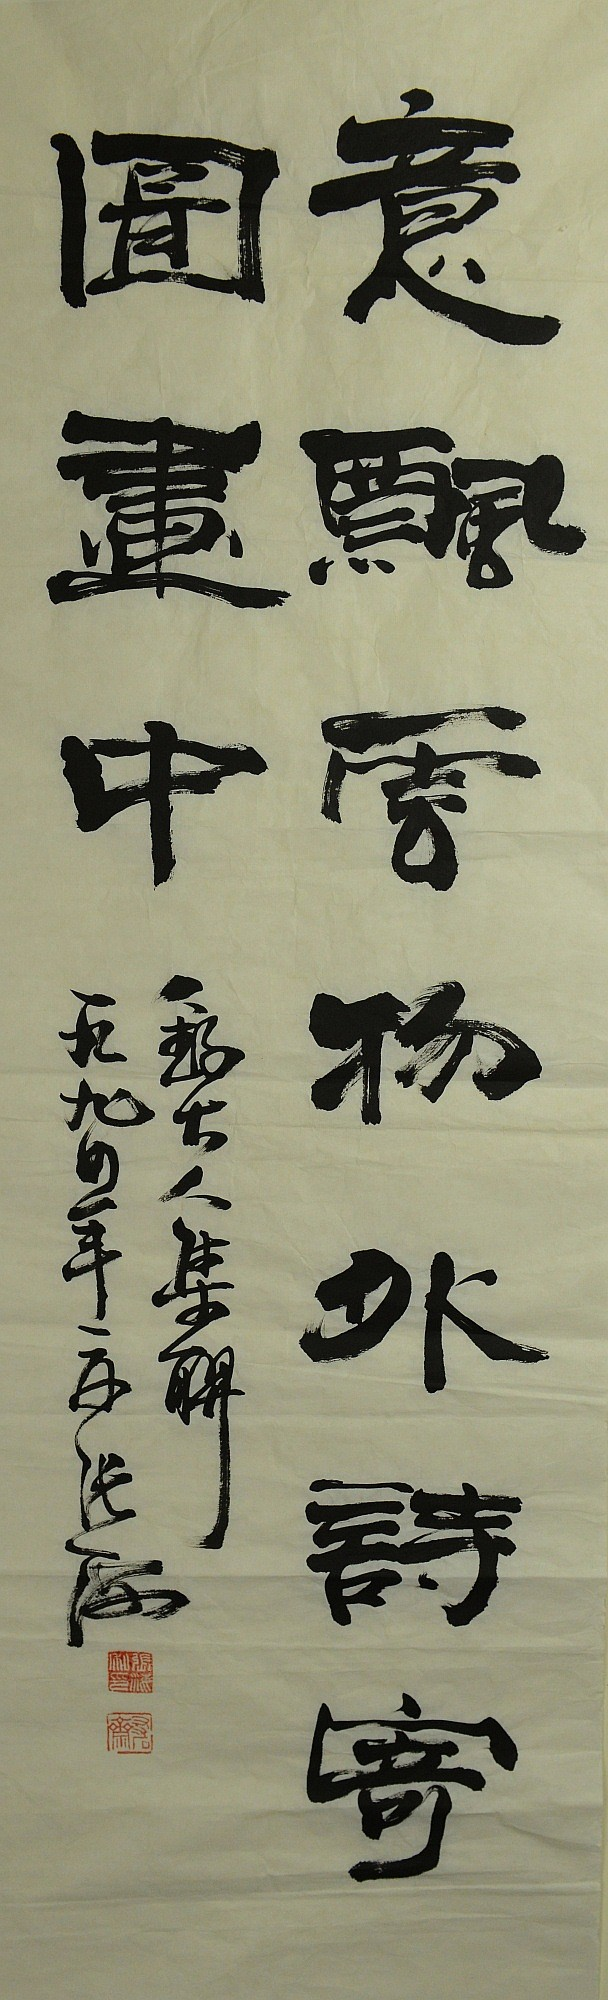 Chinese Calligraphy on Paper Zhang Hui